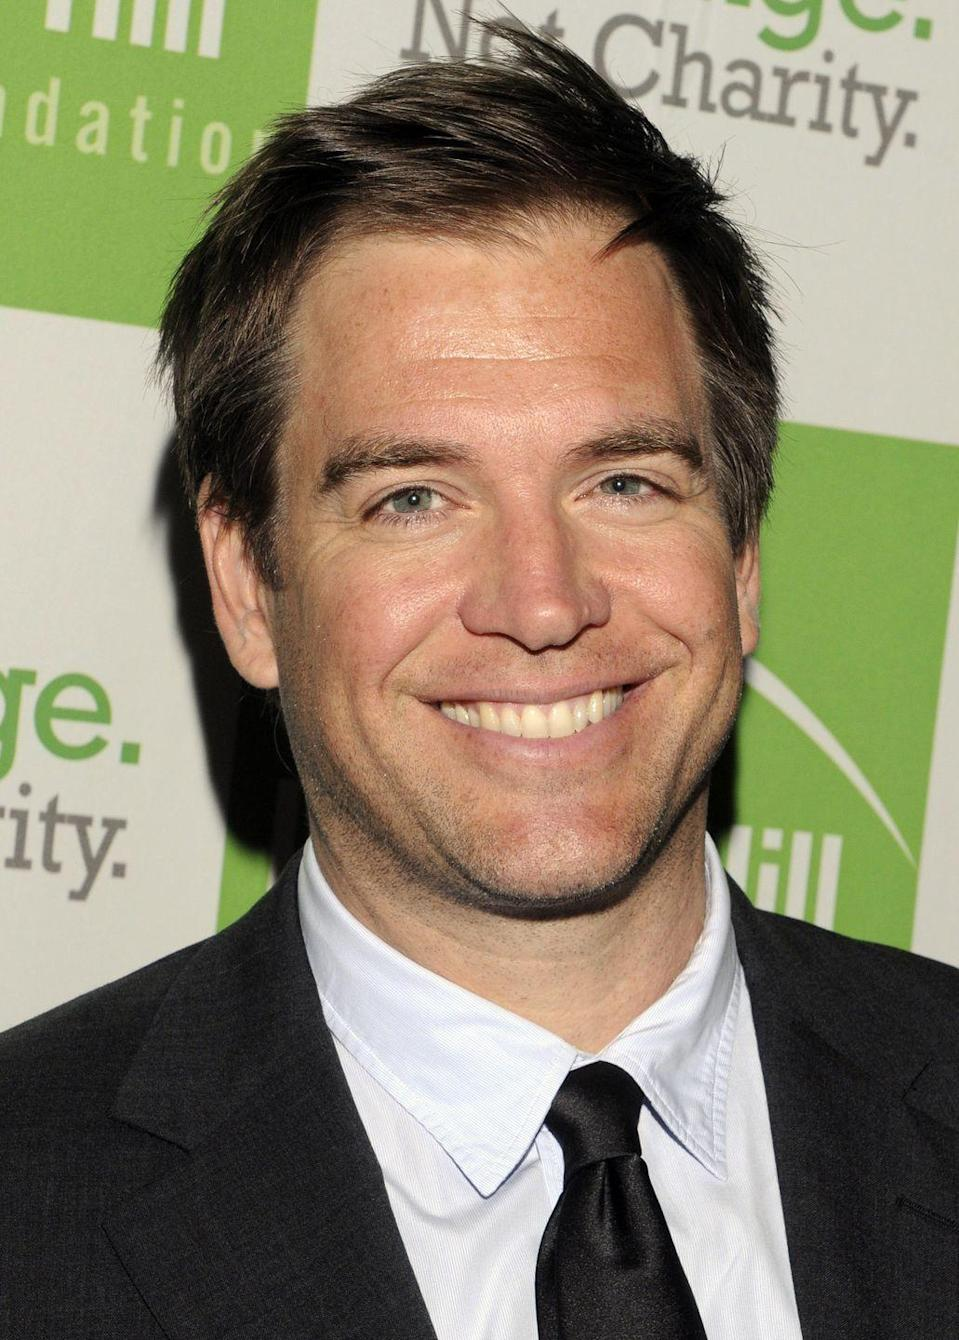 "<p>Michael Weatherly, known for his quippy one-liners as Agent Anthony DiNozzo on <em>NCIS </em>for 13 seasons. He was written out of the show as if he was retiring from service, but in reality Weatherly was jumping to another CBS show, as the main character on <em>Bull</em>. ""It came about at the right time. I was burnt out by <em>NCIS</em> and I was ready for a new challenge<em>,""</em> he told <em><a href=""https://www.hollywoodreporter.com/live-feed/michael-weatherly-leaving-ncis-bull-918727"" rel=""nofollow noopener"" target=""_blank"" data-ylk=""slk:The Hollywood Reporter"" class=""link rapid-noclick-resp"">The Hollywood Reporter</a> </em>at the Television Critics Association summer press tour. </p>"